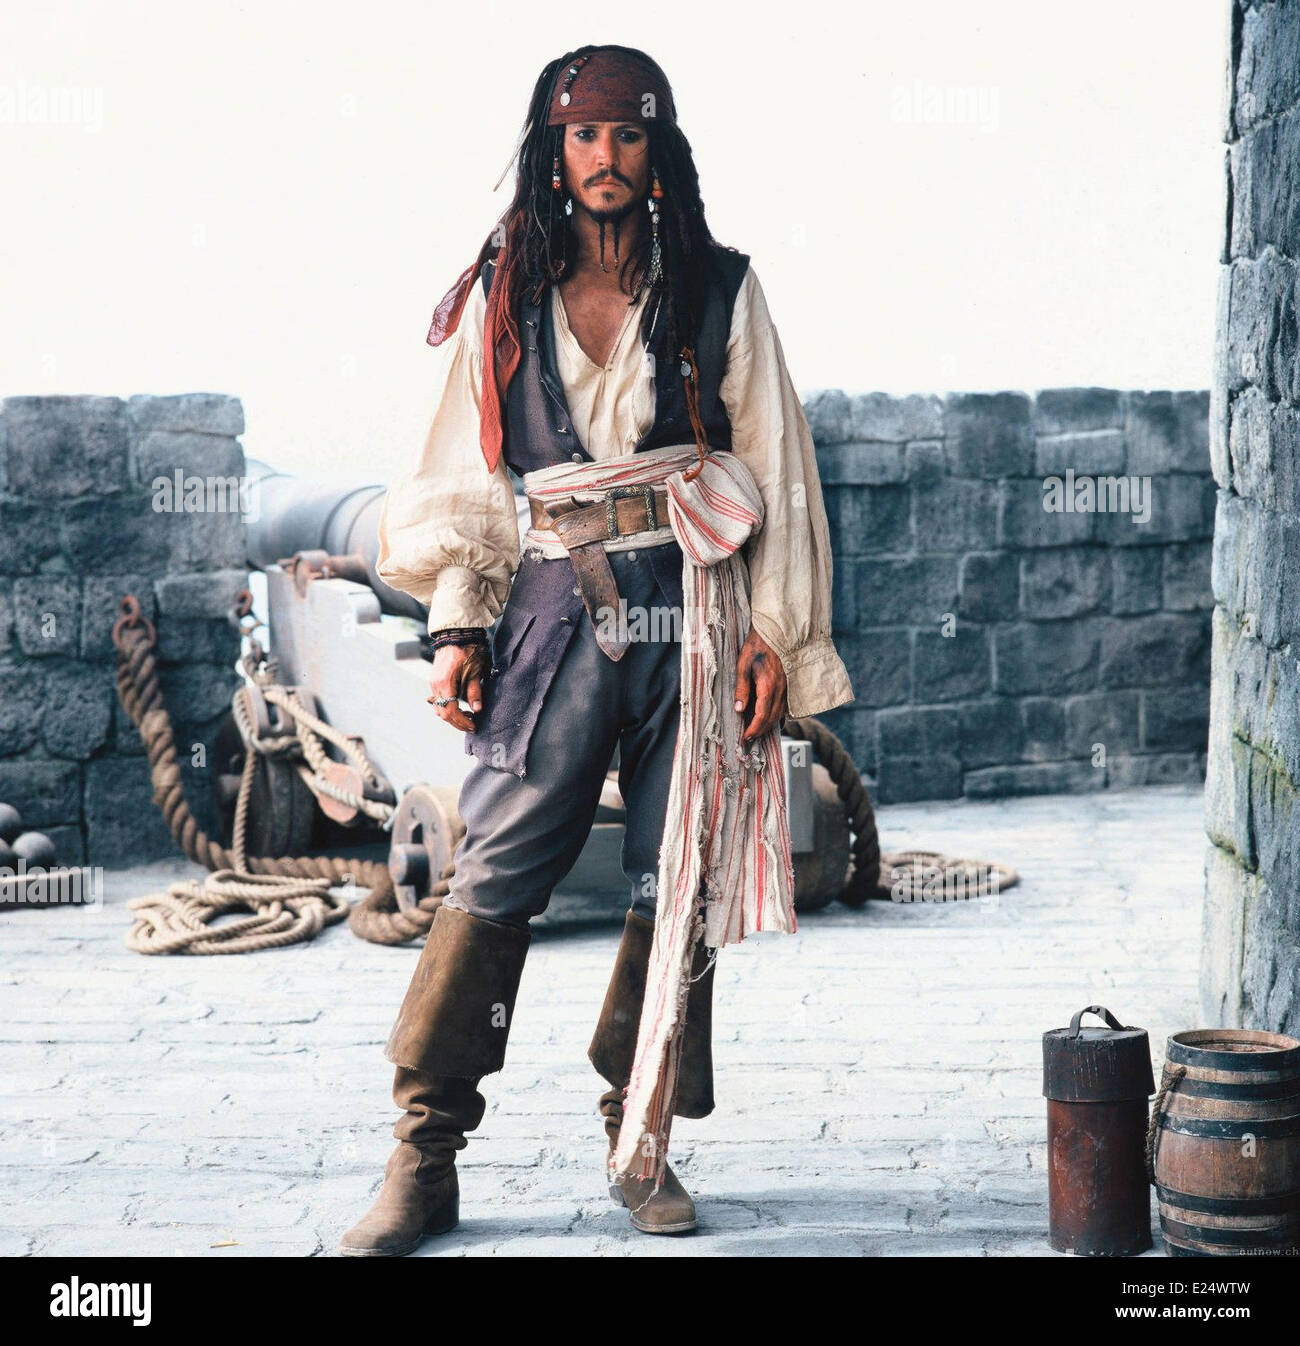 an introduction to pirates and the movies Read the pirates of somalia (2017) from the story interracial/bwwm movies & shows by pacifyherafi (prophet nicole )  introduction black sails + luke arnold.